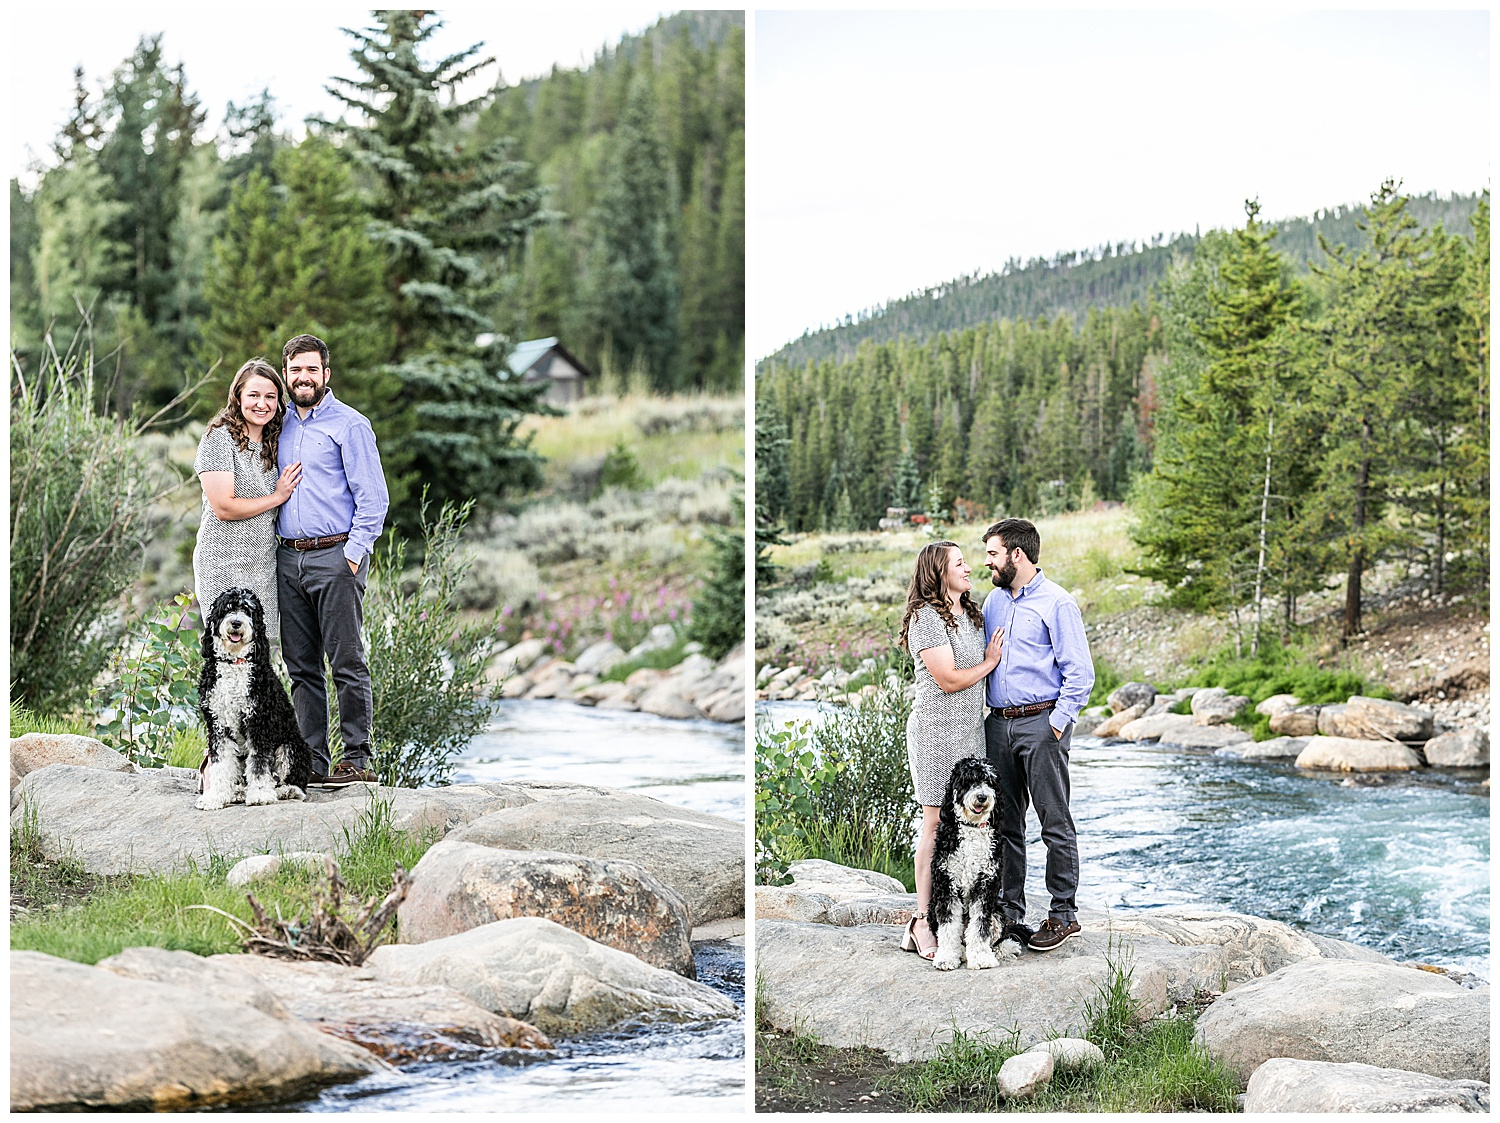 Molly + Ryan Breckenridge Destination Engagement Session Living Radiant Photography_0020.jpg